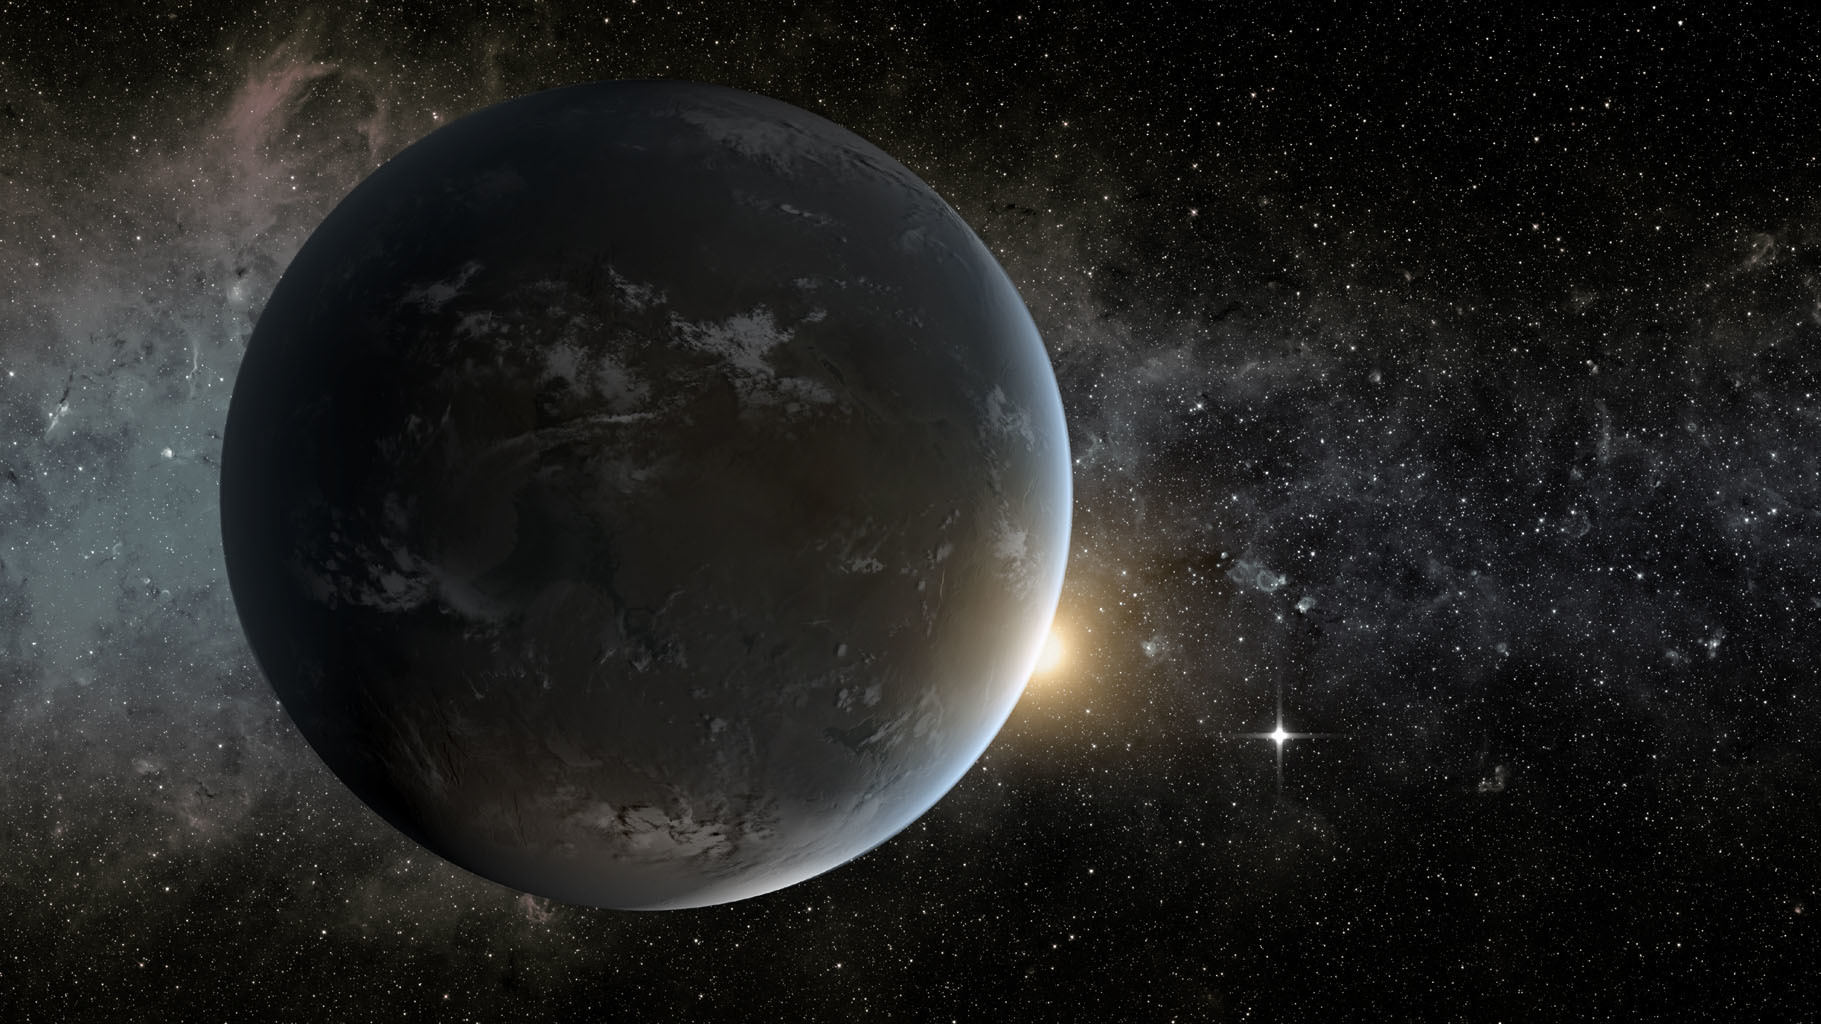 Illustration of a grey planet with a star.